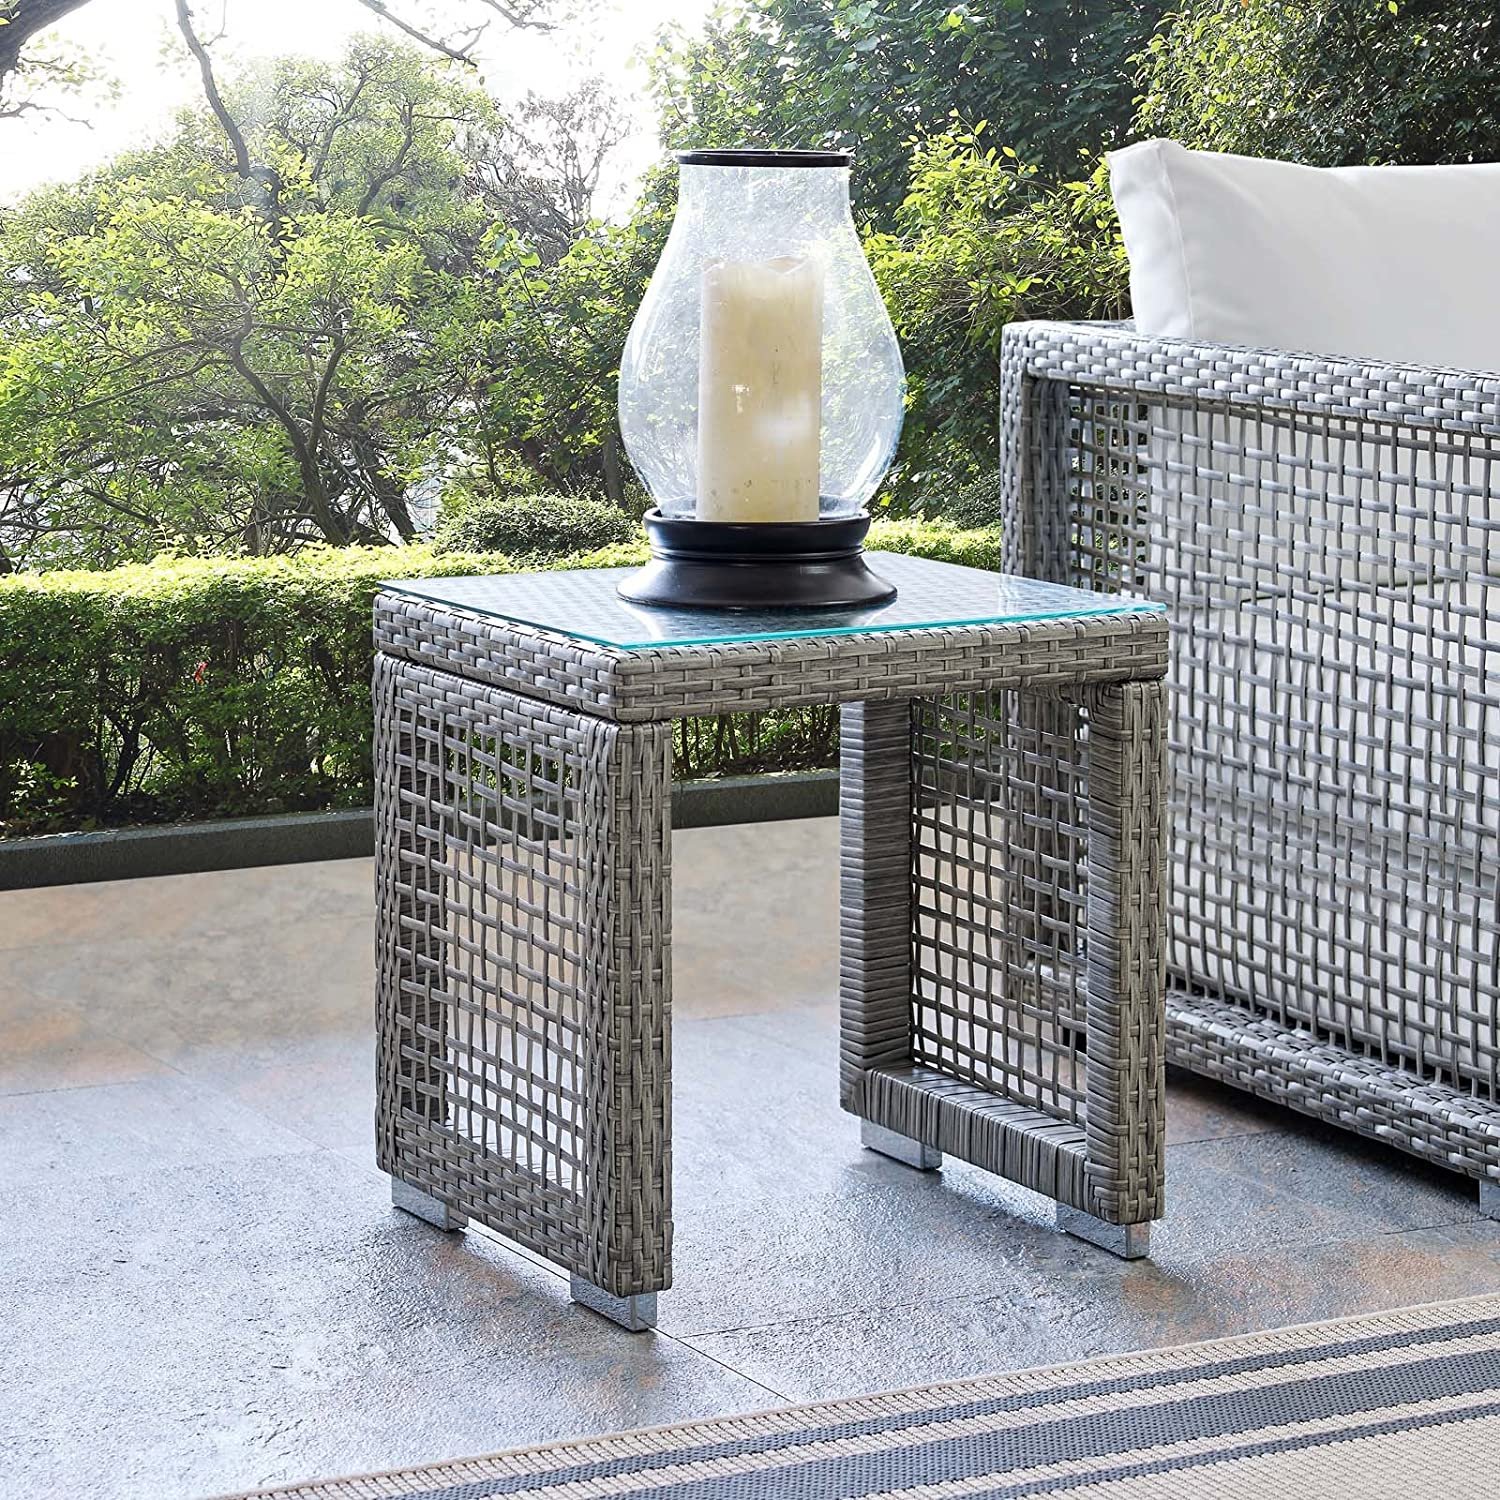 Modway EEI-9-GRY Aura Outdoor Patio Wicker Rattan Side Table, Gray Gray